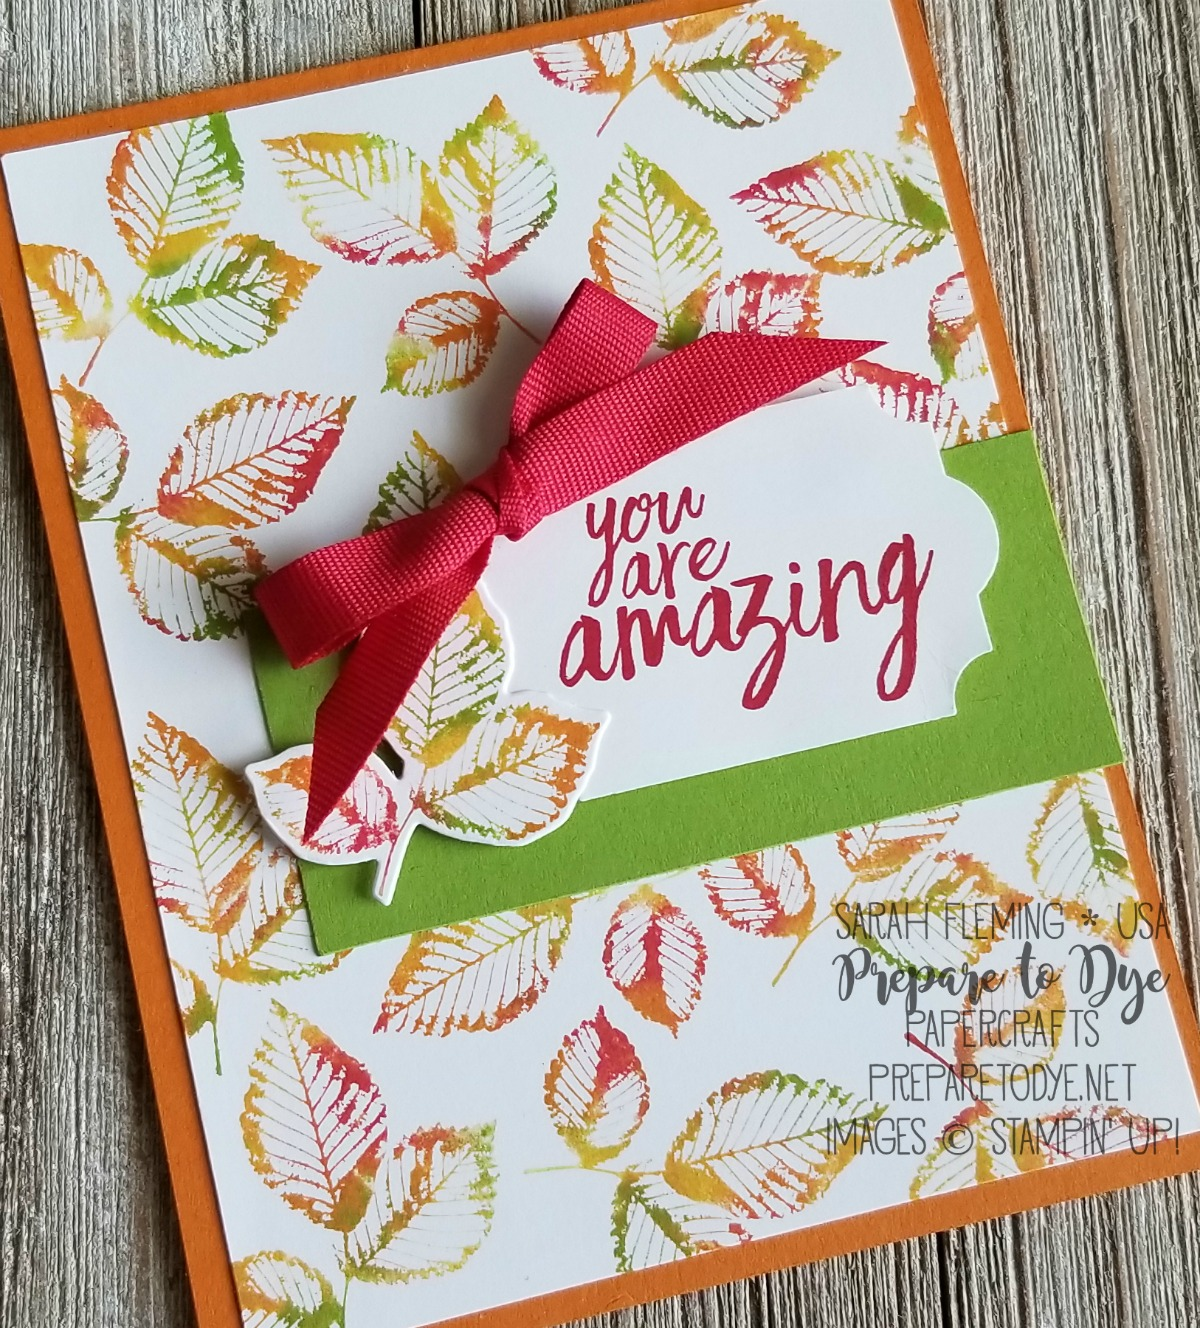 Stampin' Up! handmade fall/autumn card using Rooted in Nature bundle with Nature's Roots framelits, All Things Thanks, Everyday Label Punch, baby wipe technique - Sarah Fleming - Prepare to Dye Papercrafts